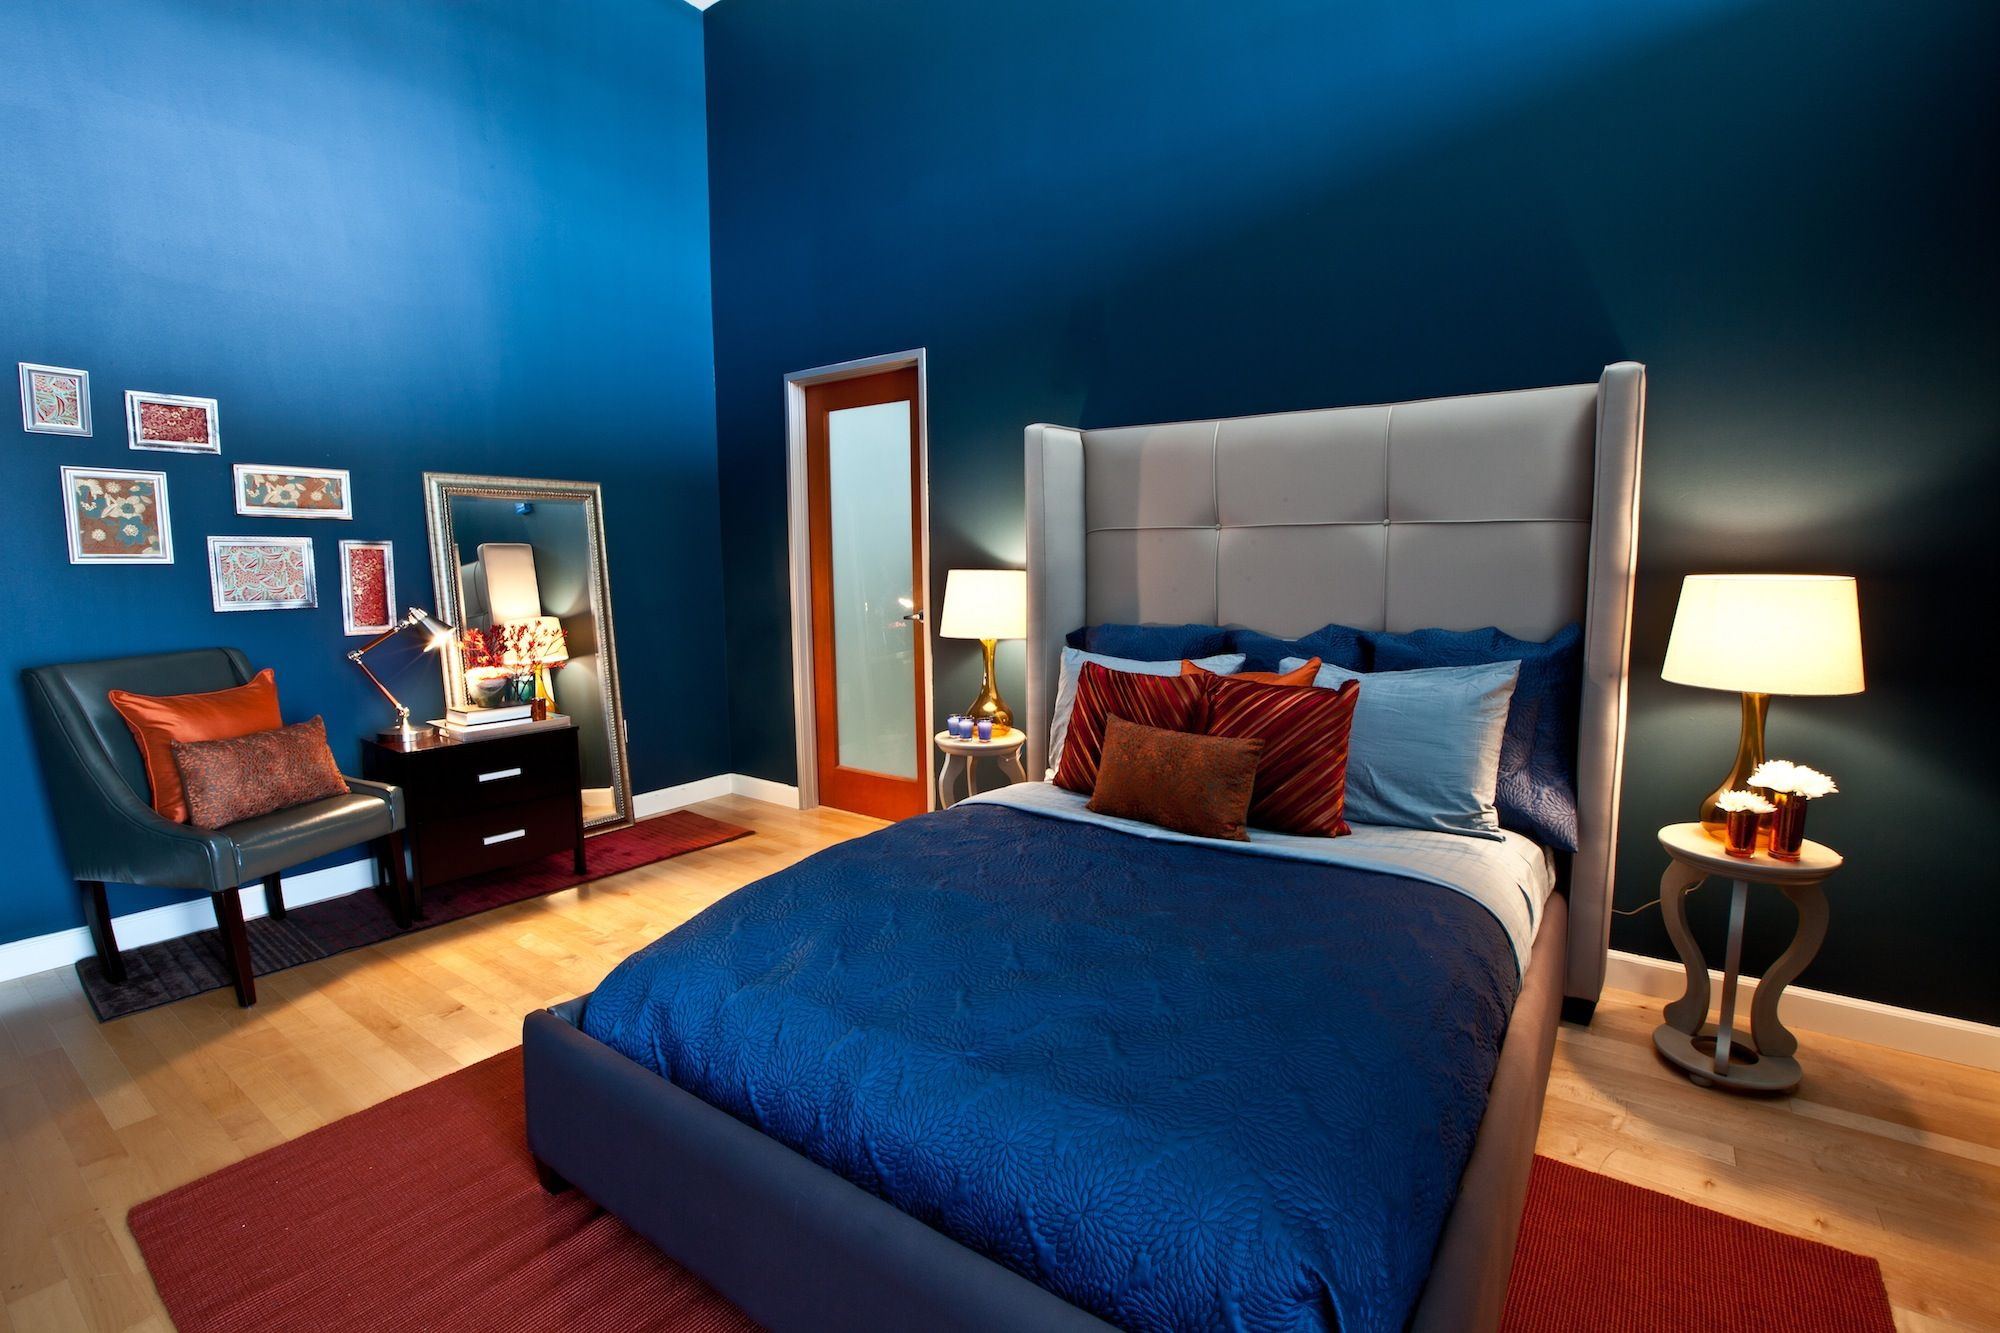 Blue bedroom ideas 3195 interior pinterest blue for Blue bedroom colors